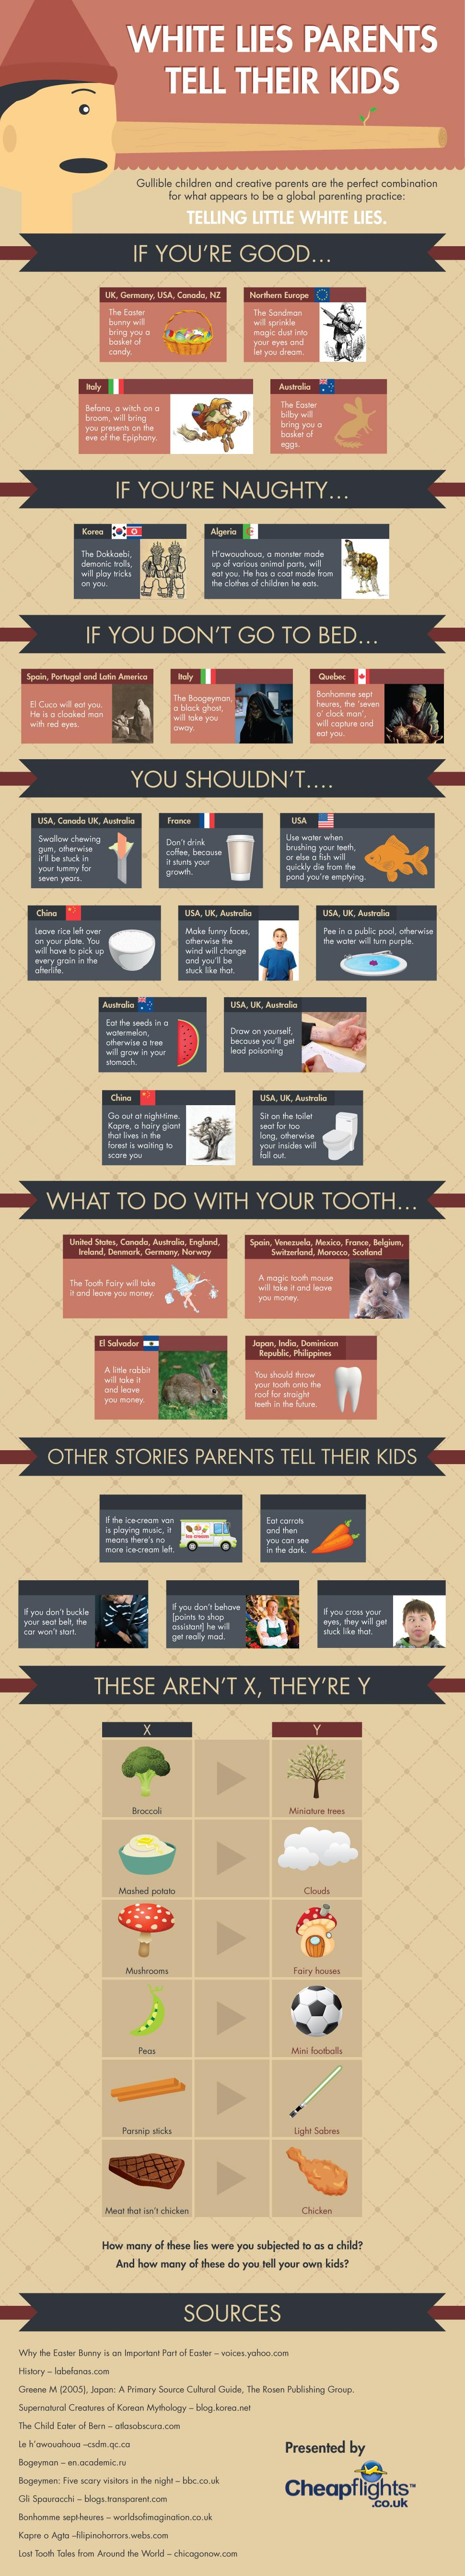 The Little White Lies That Parents Tell Their Kids Infographic